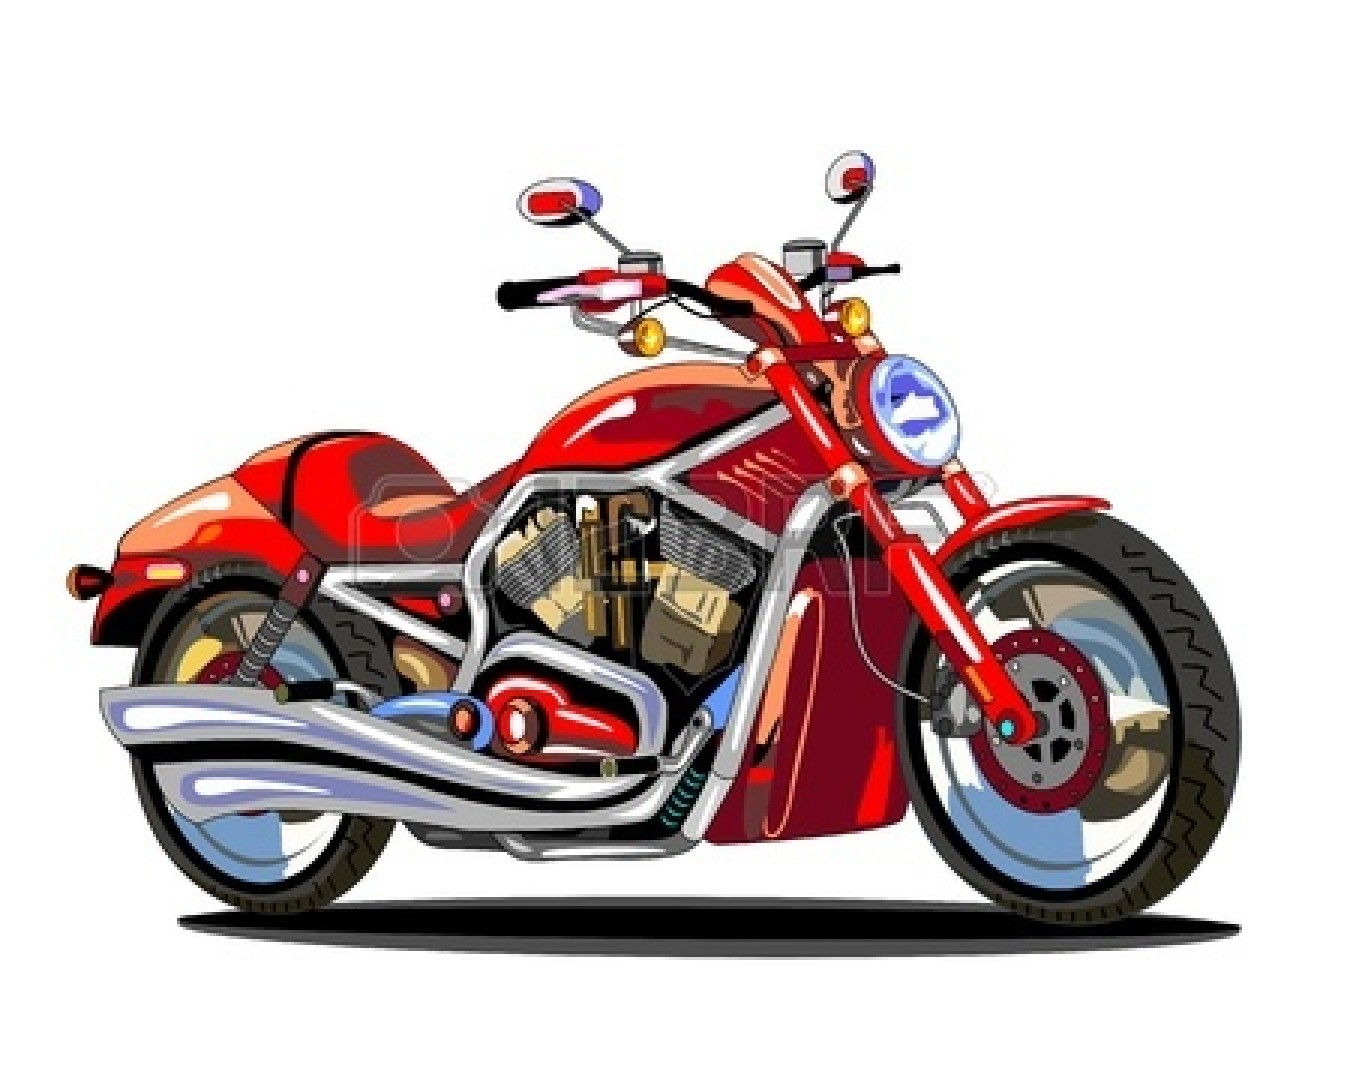 FunnyMotorcycleCartoons together with Motorcycle Cartoon Pics likewise Guns N Roses together with Megan Fox Supergirl Fanart moreover Marvel Avengers Movie 2012. on old harley rider cartoon